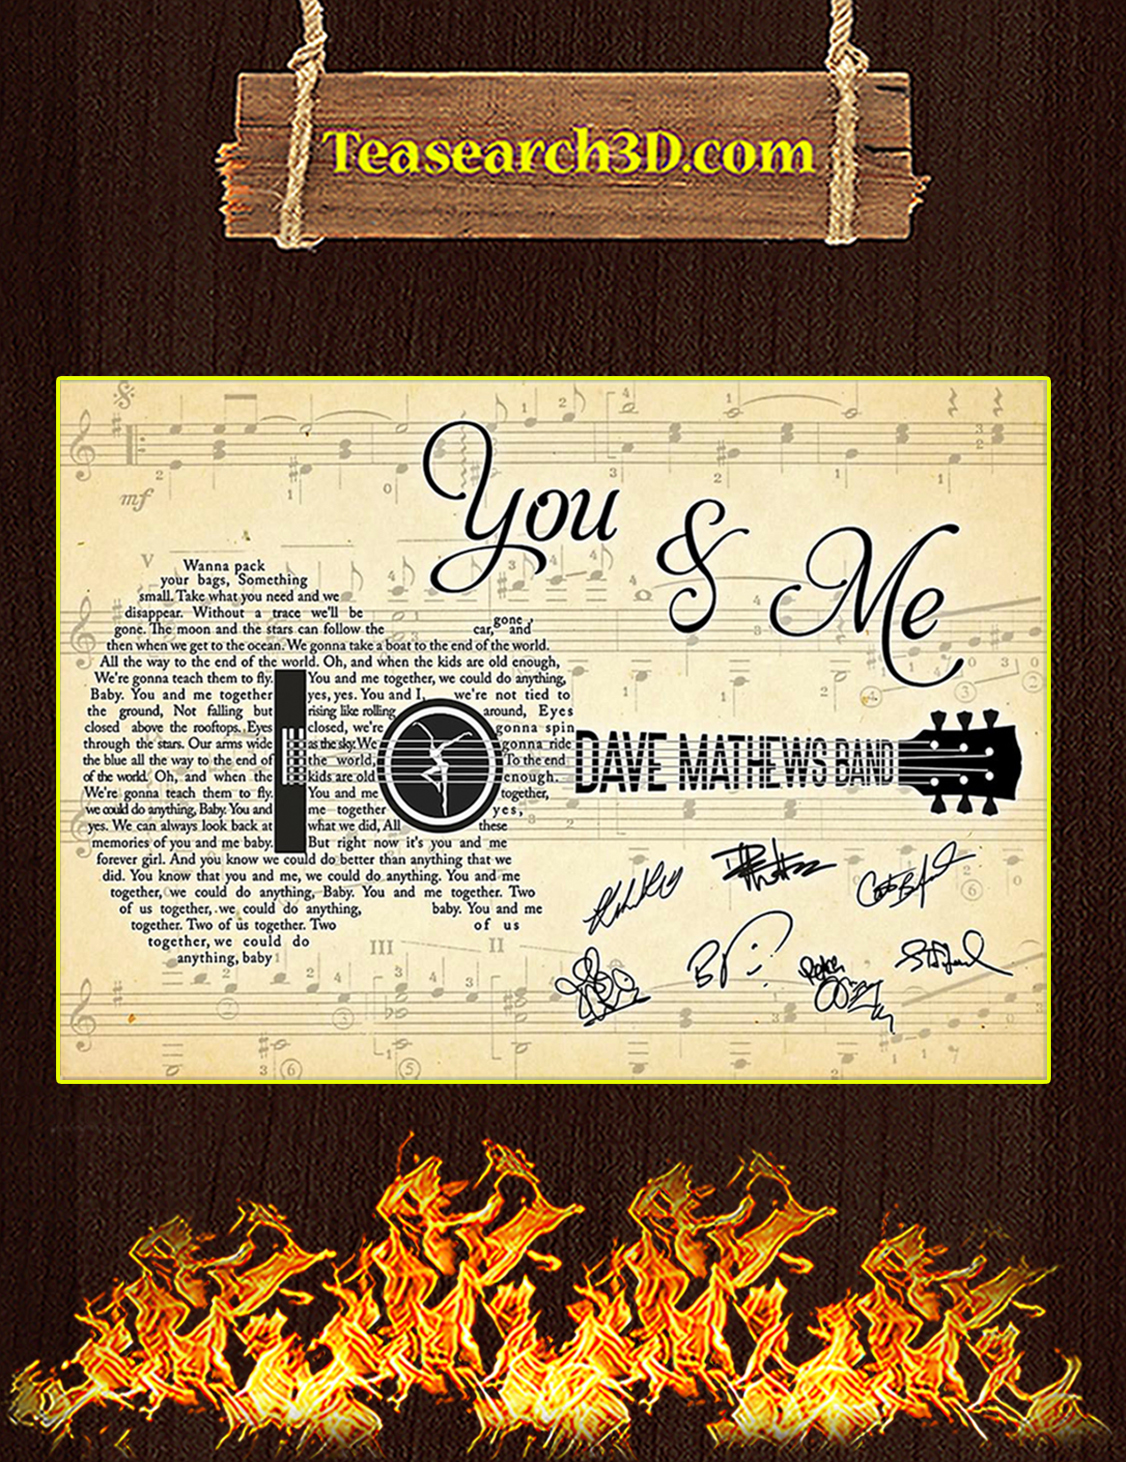 You And Me Dave Matthews Band Guitar Poster A3